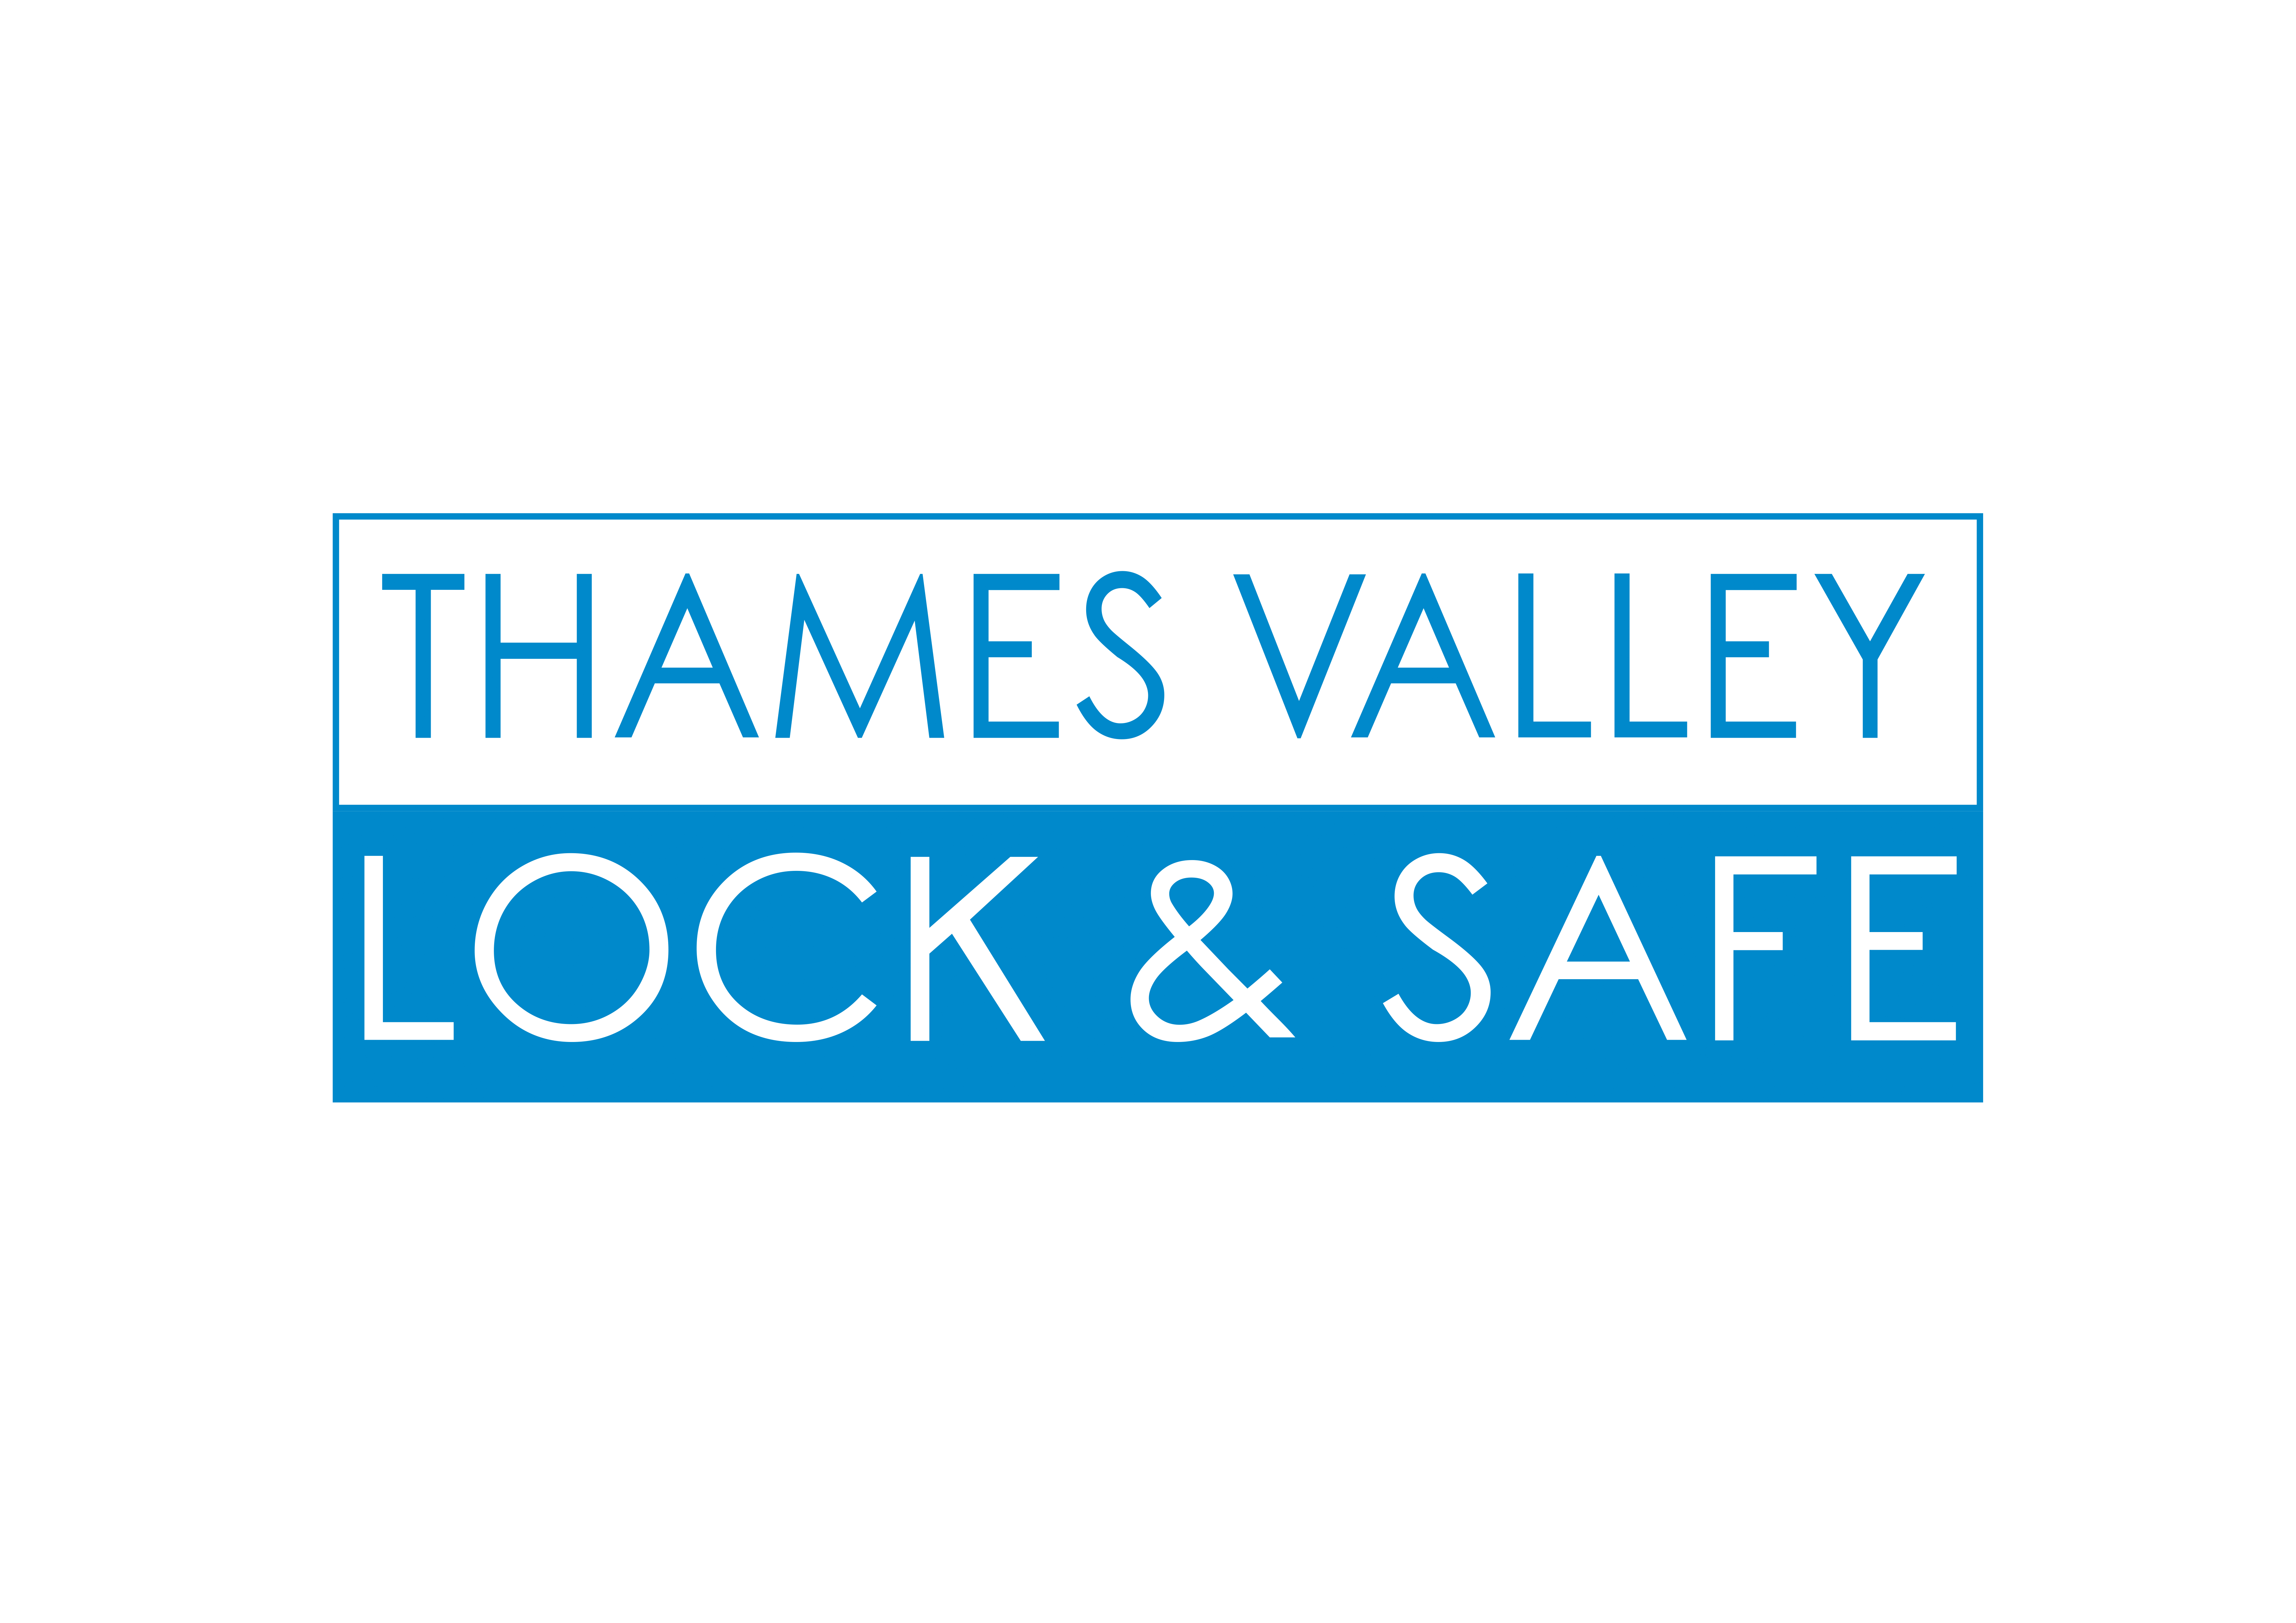 Thames Valley Lock and Safe